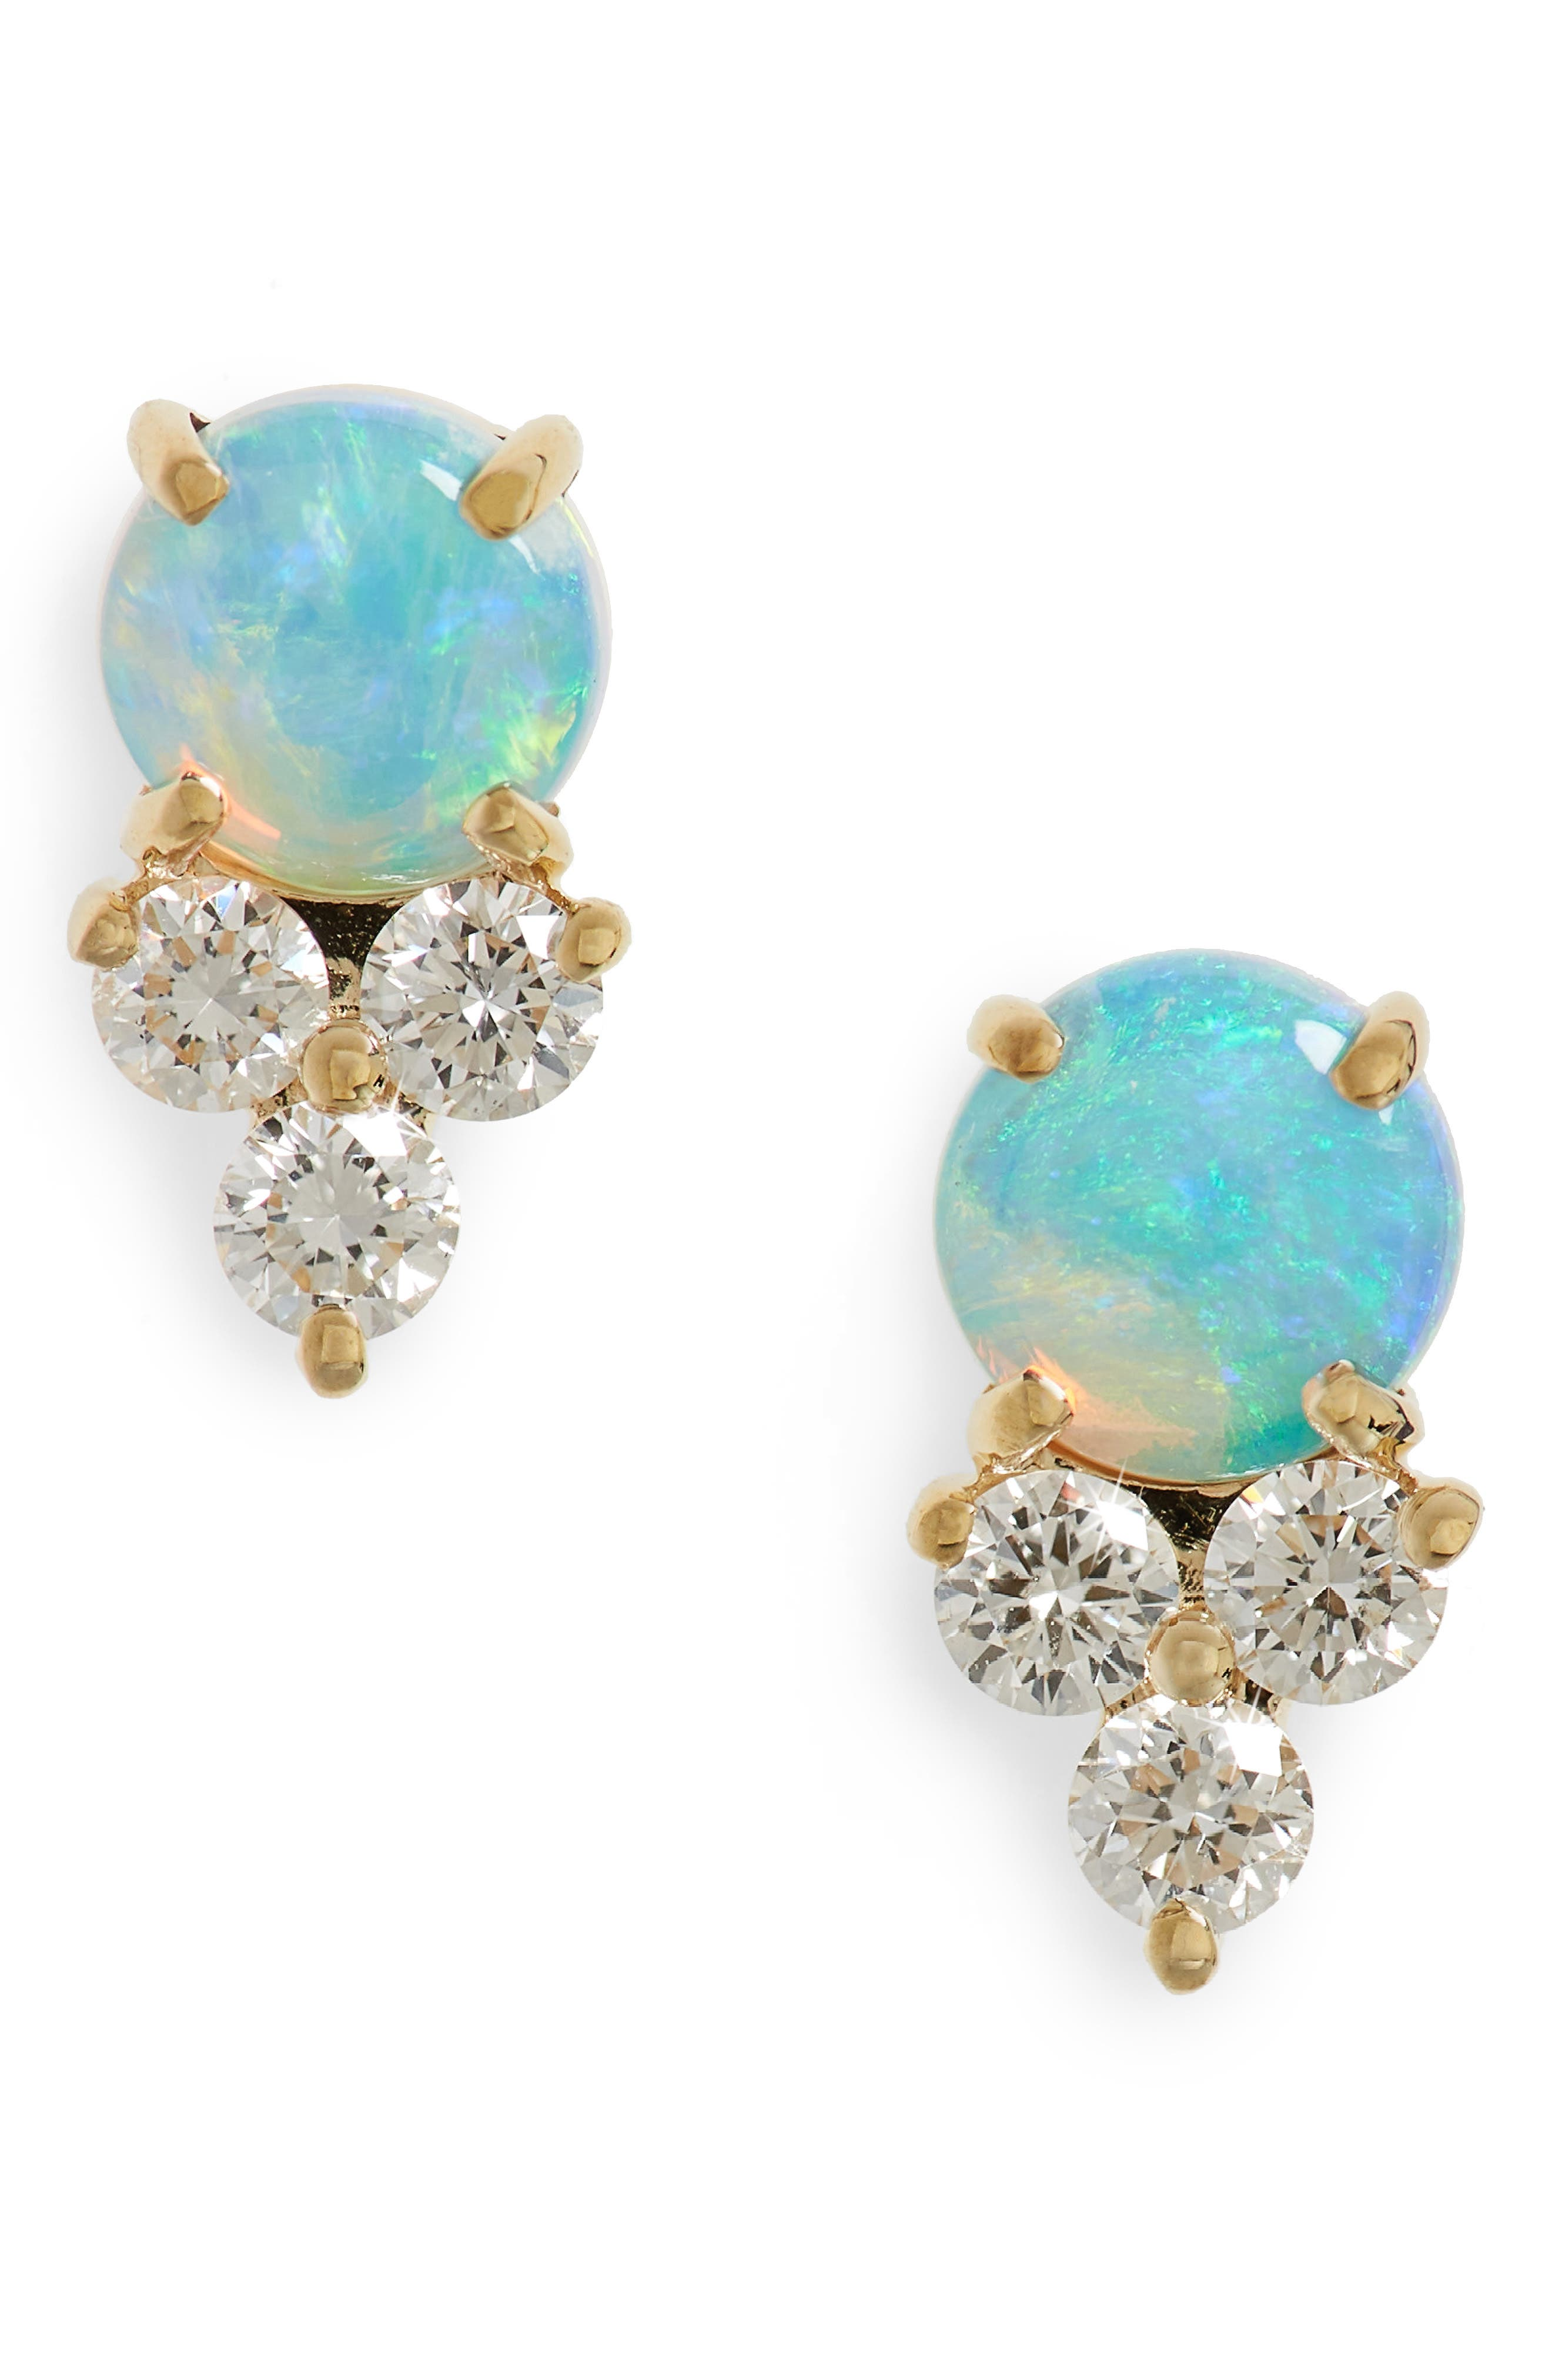 Diamond Trio Stone Stud Earrings,                         Main,                         color, Yellow Gold/ Opal